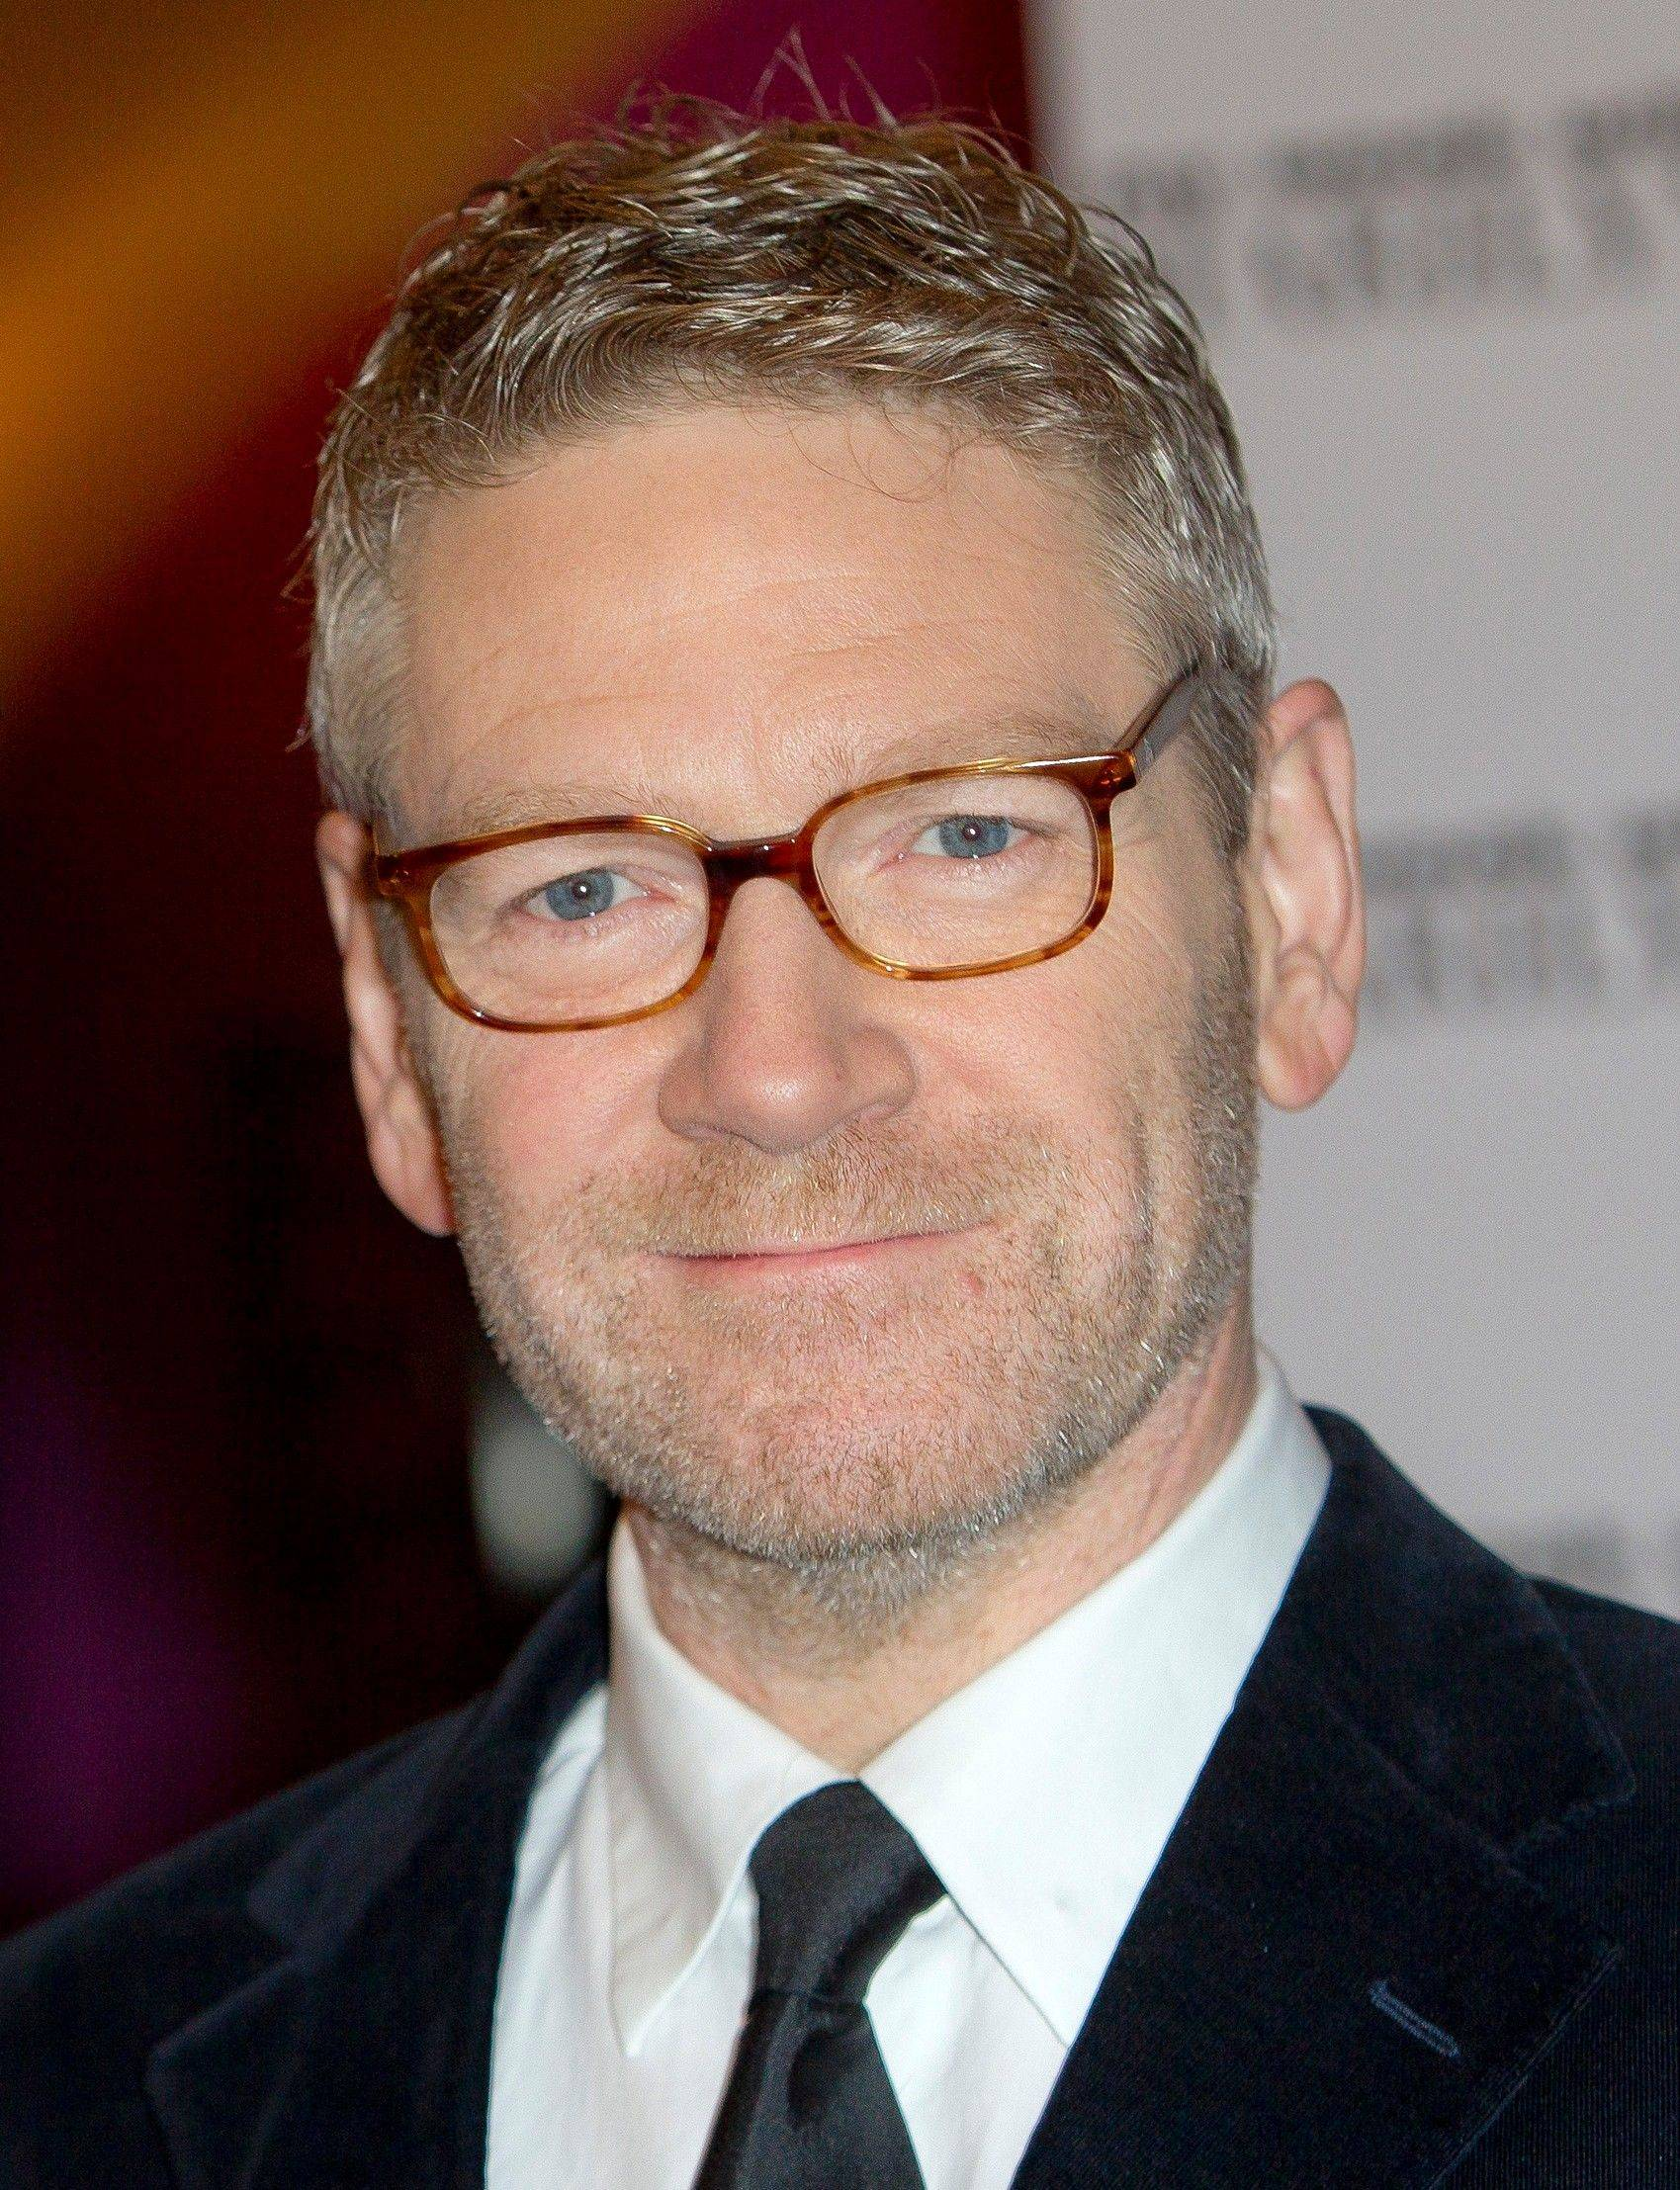 "In this Nov. 20, 2011 file photo, British actor Kenneth Branagh arrives for the UK Premiere of ""My Week With Marilyn,"" in London. Branagh was nominated Tuesday, Jan. 24, 2012 for an Academy Award for best supporting actor for his role in the film."